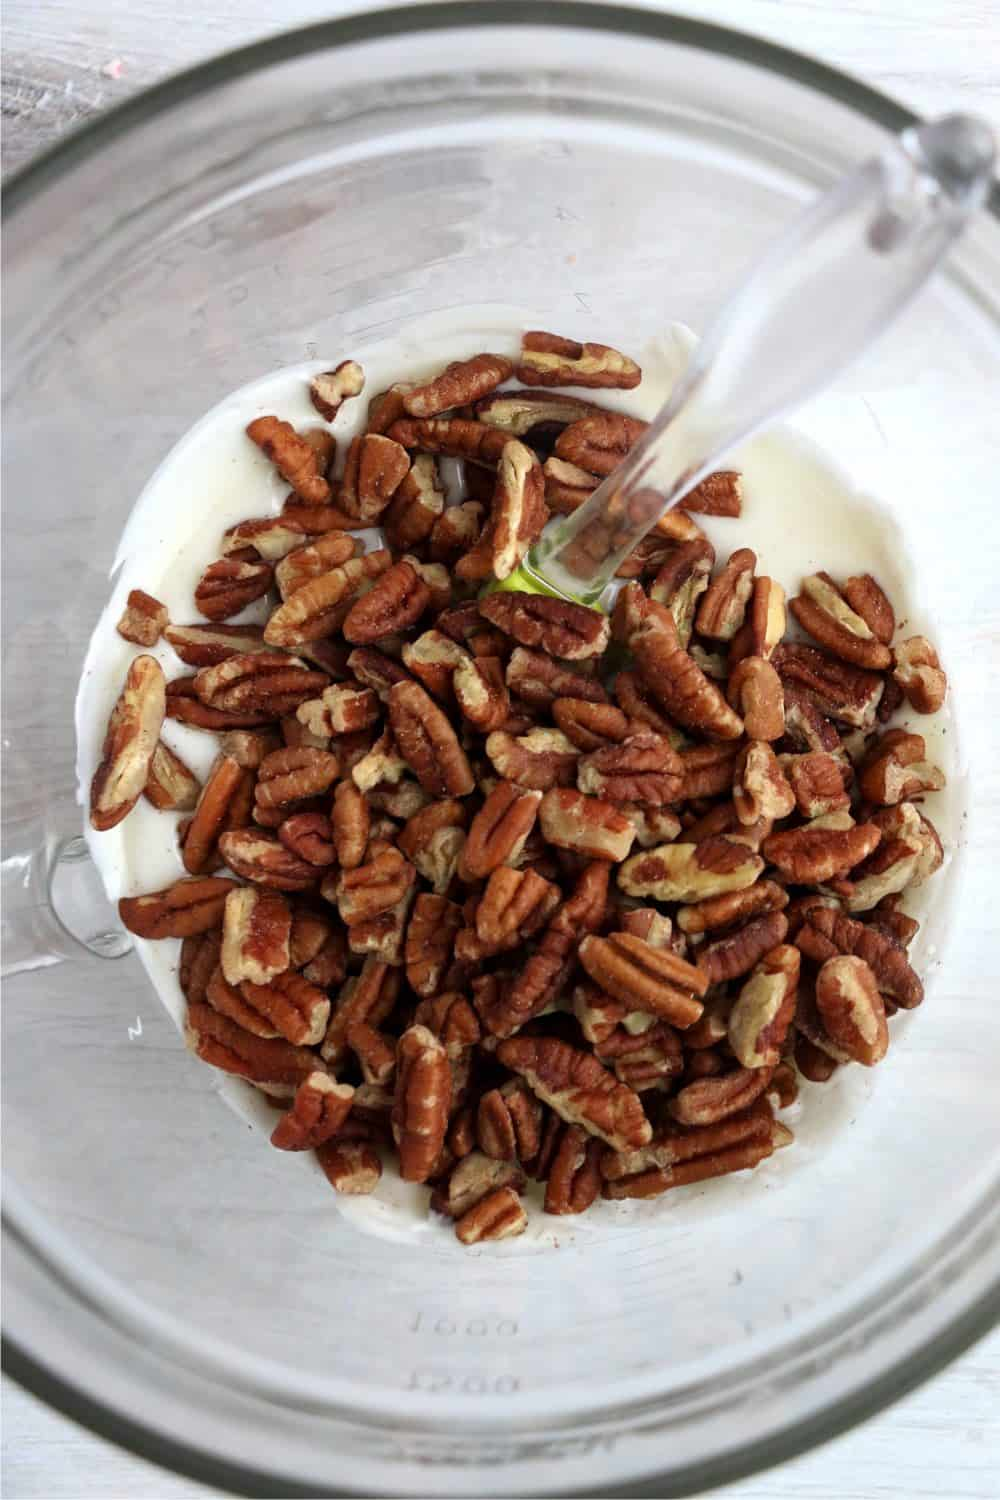 white chocolate and pecans ready to be mixed together